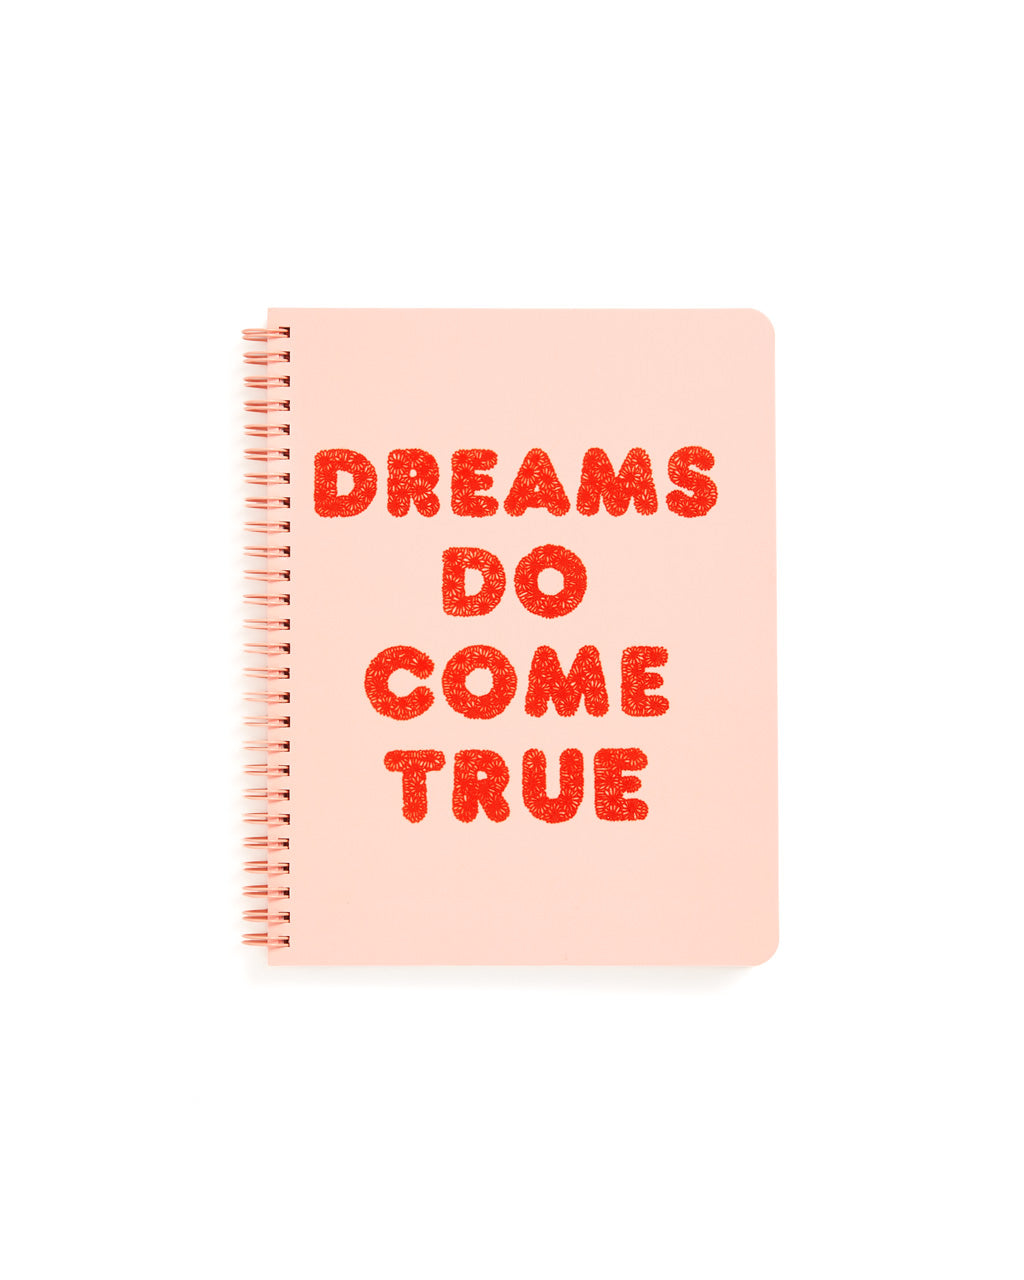 This Rough Draft Notebook comes in pink, with 'Dreams Do Come True' printed in red letters across the front.